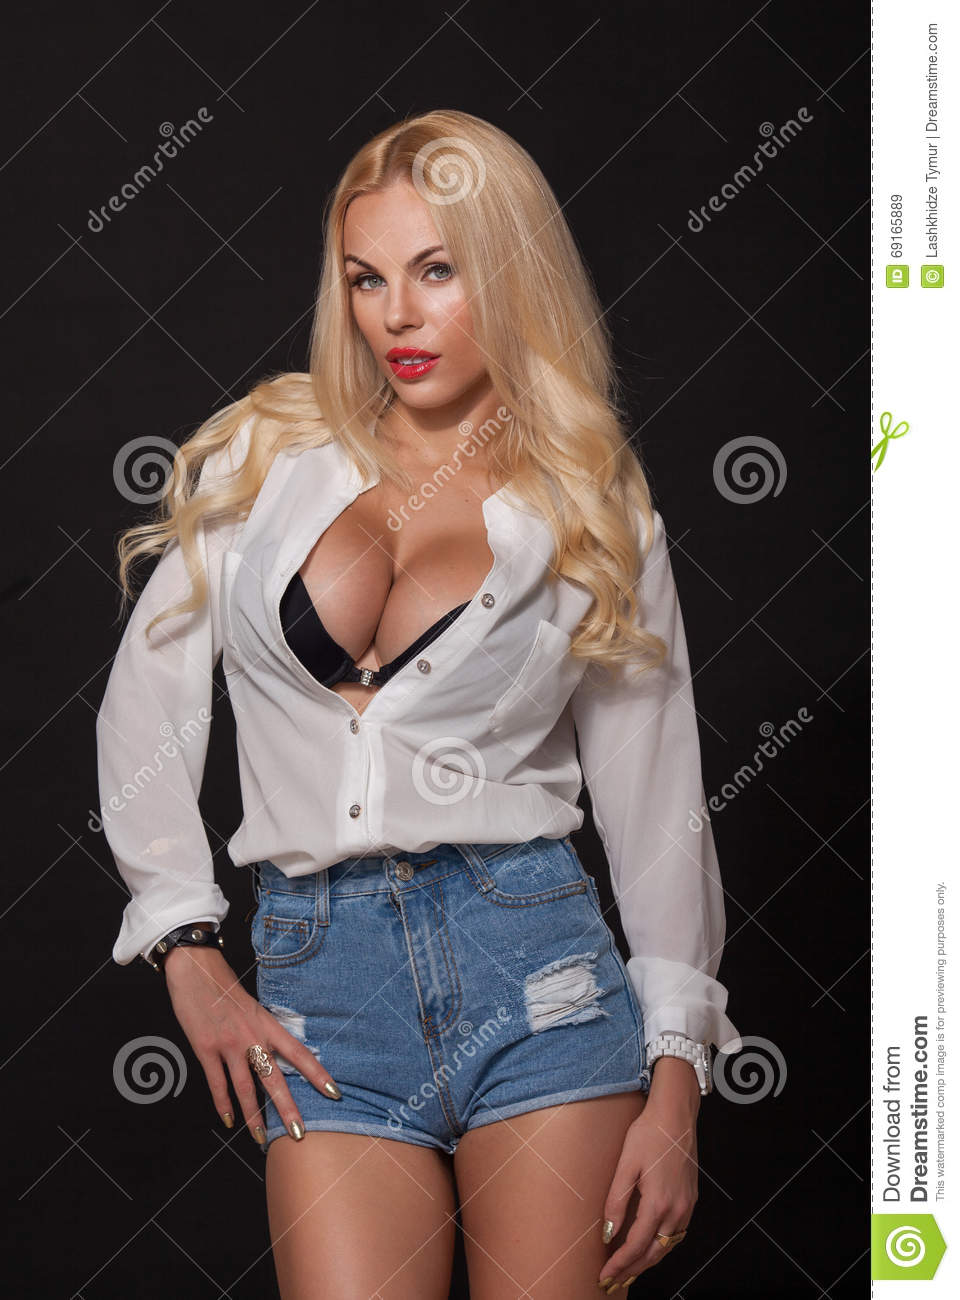 blond girl. big boobs. on black background stock image - image of